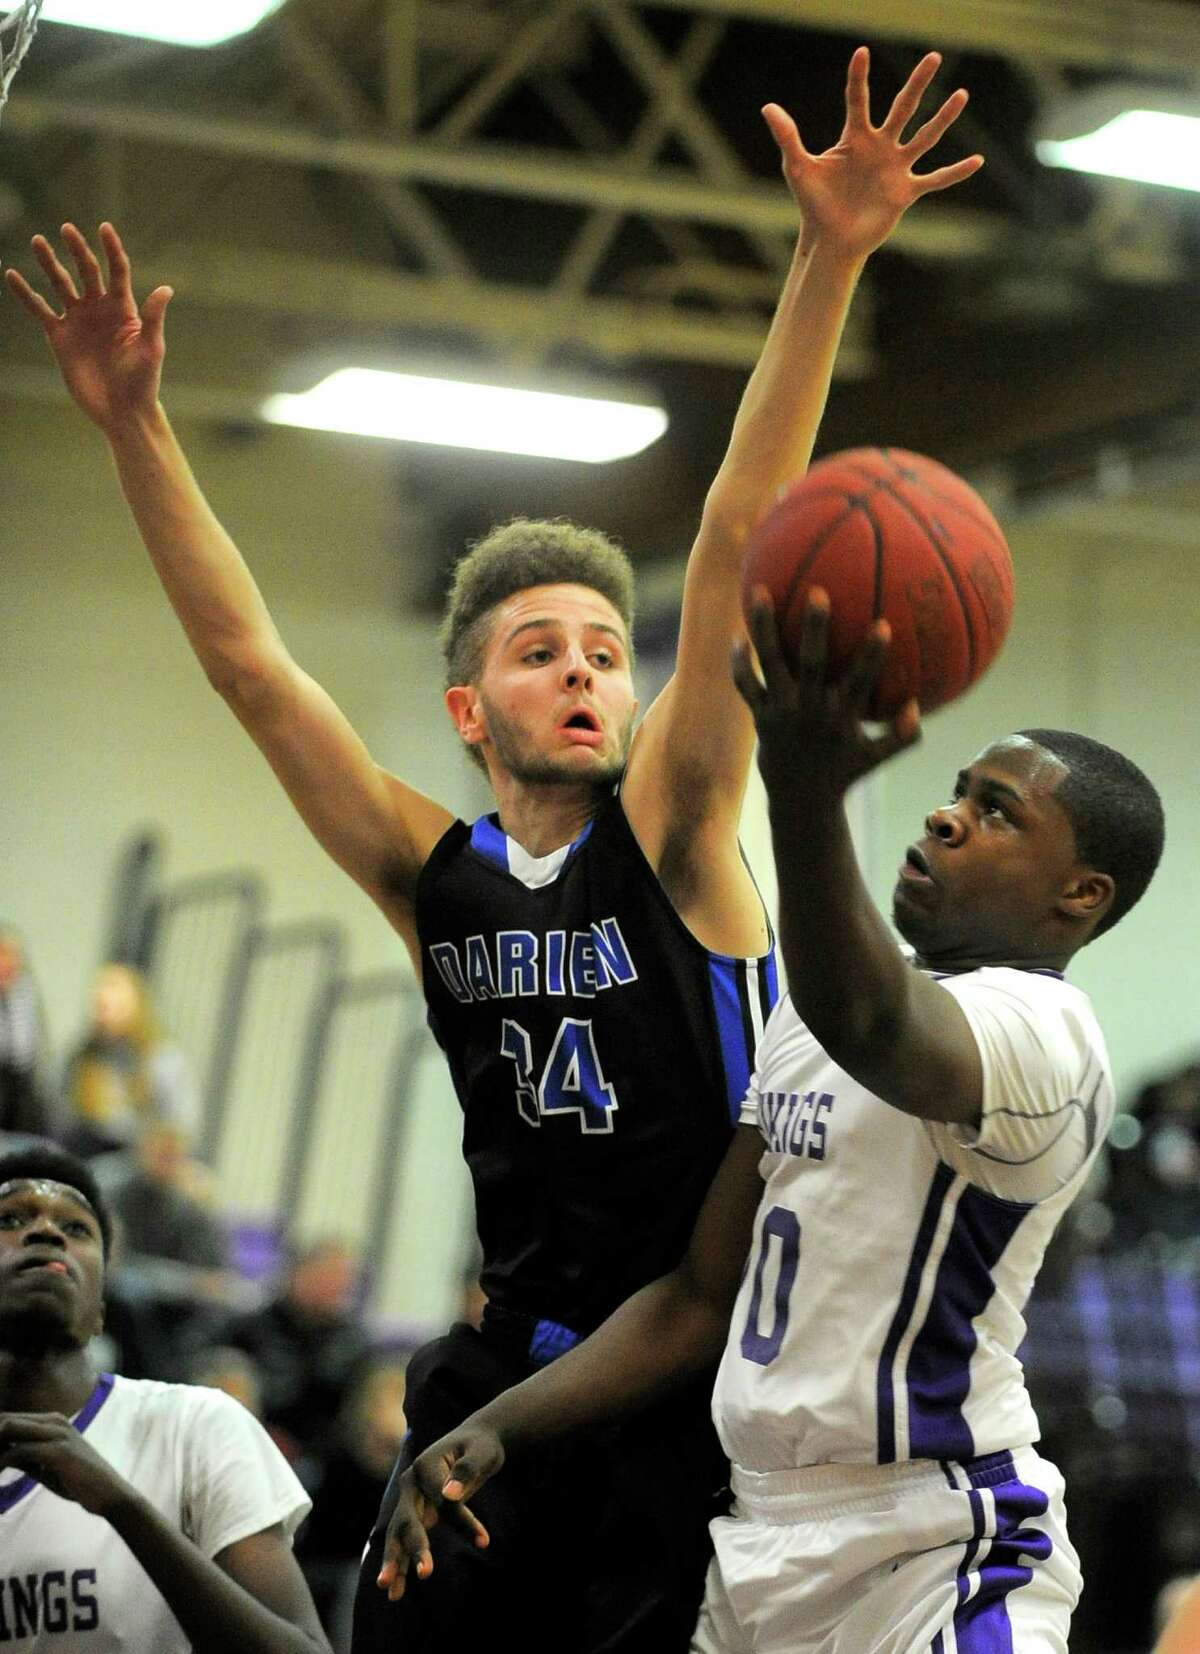 Westhill Tyrell Alexander puts up a shot underr pressure from Darien Alex Preston. Westhill defeated Darien 55-45 in a FCIAC league game at Westhill High School in Stamford on Feb. 12, 2016.